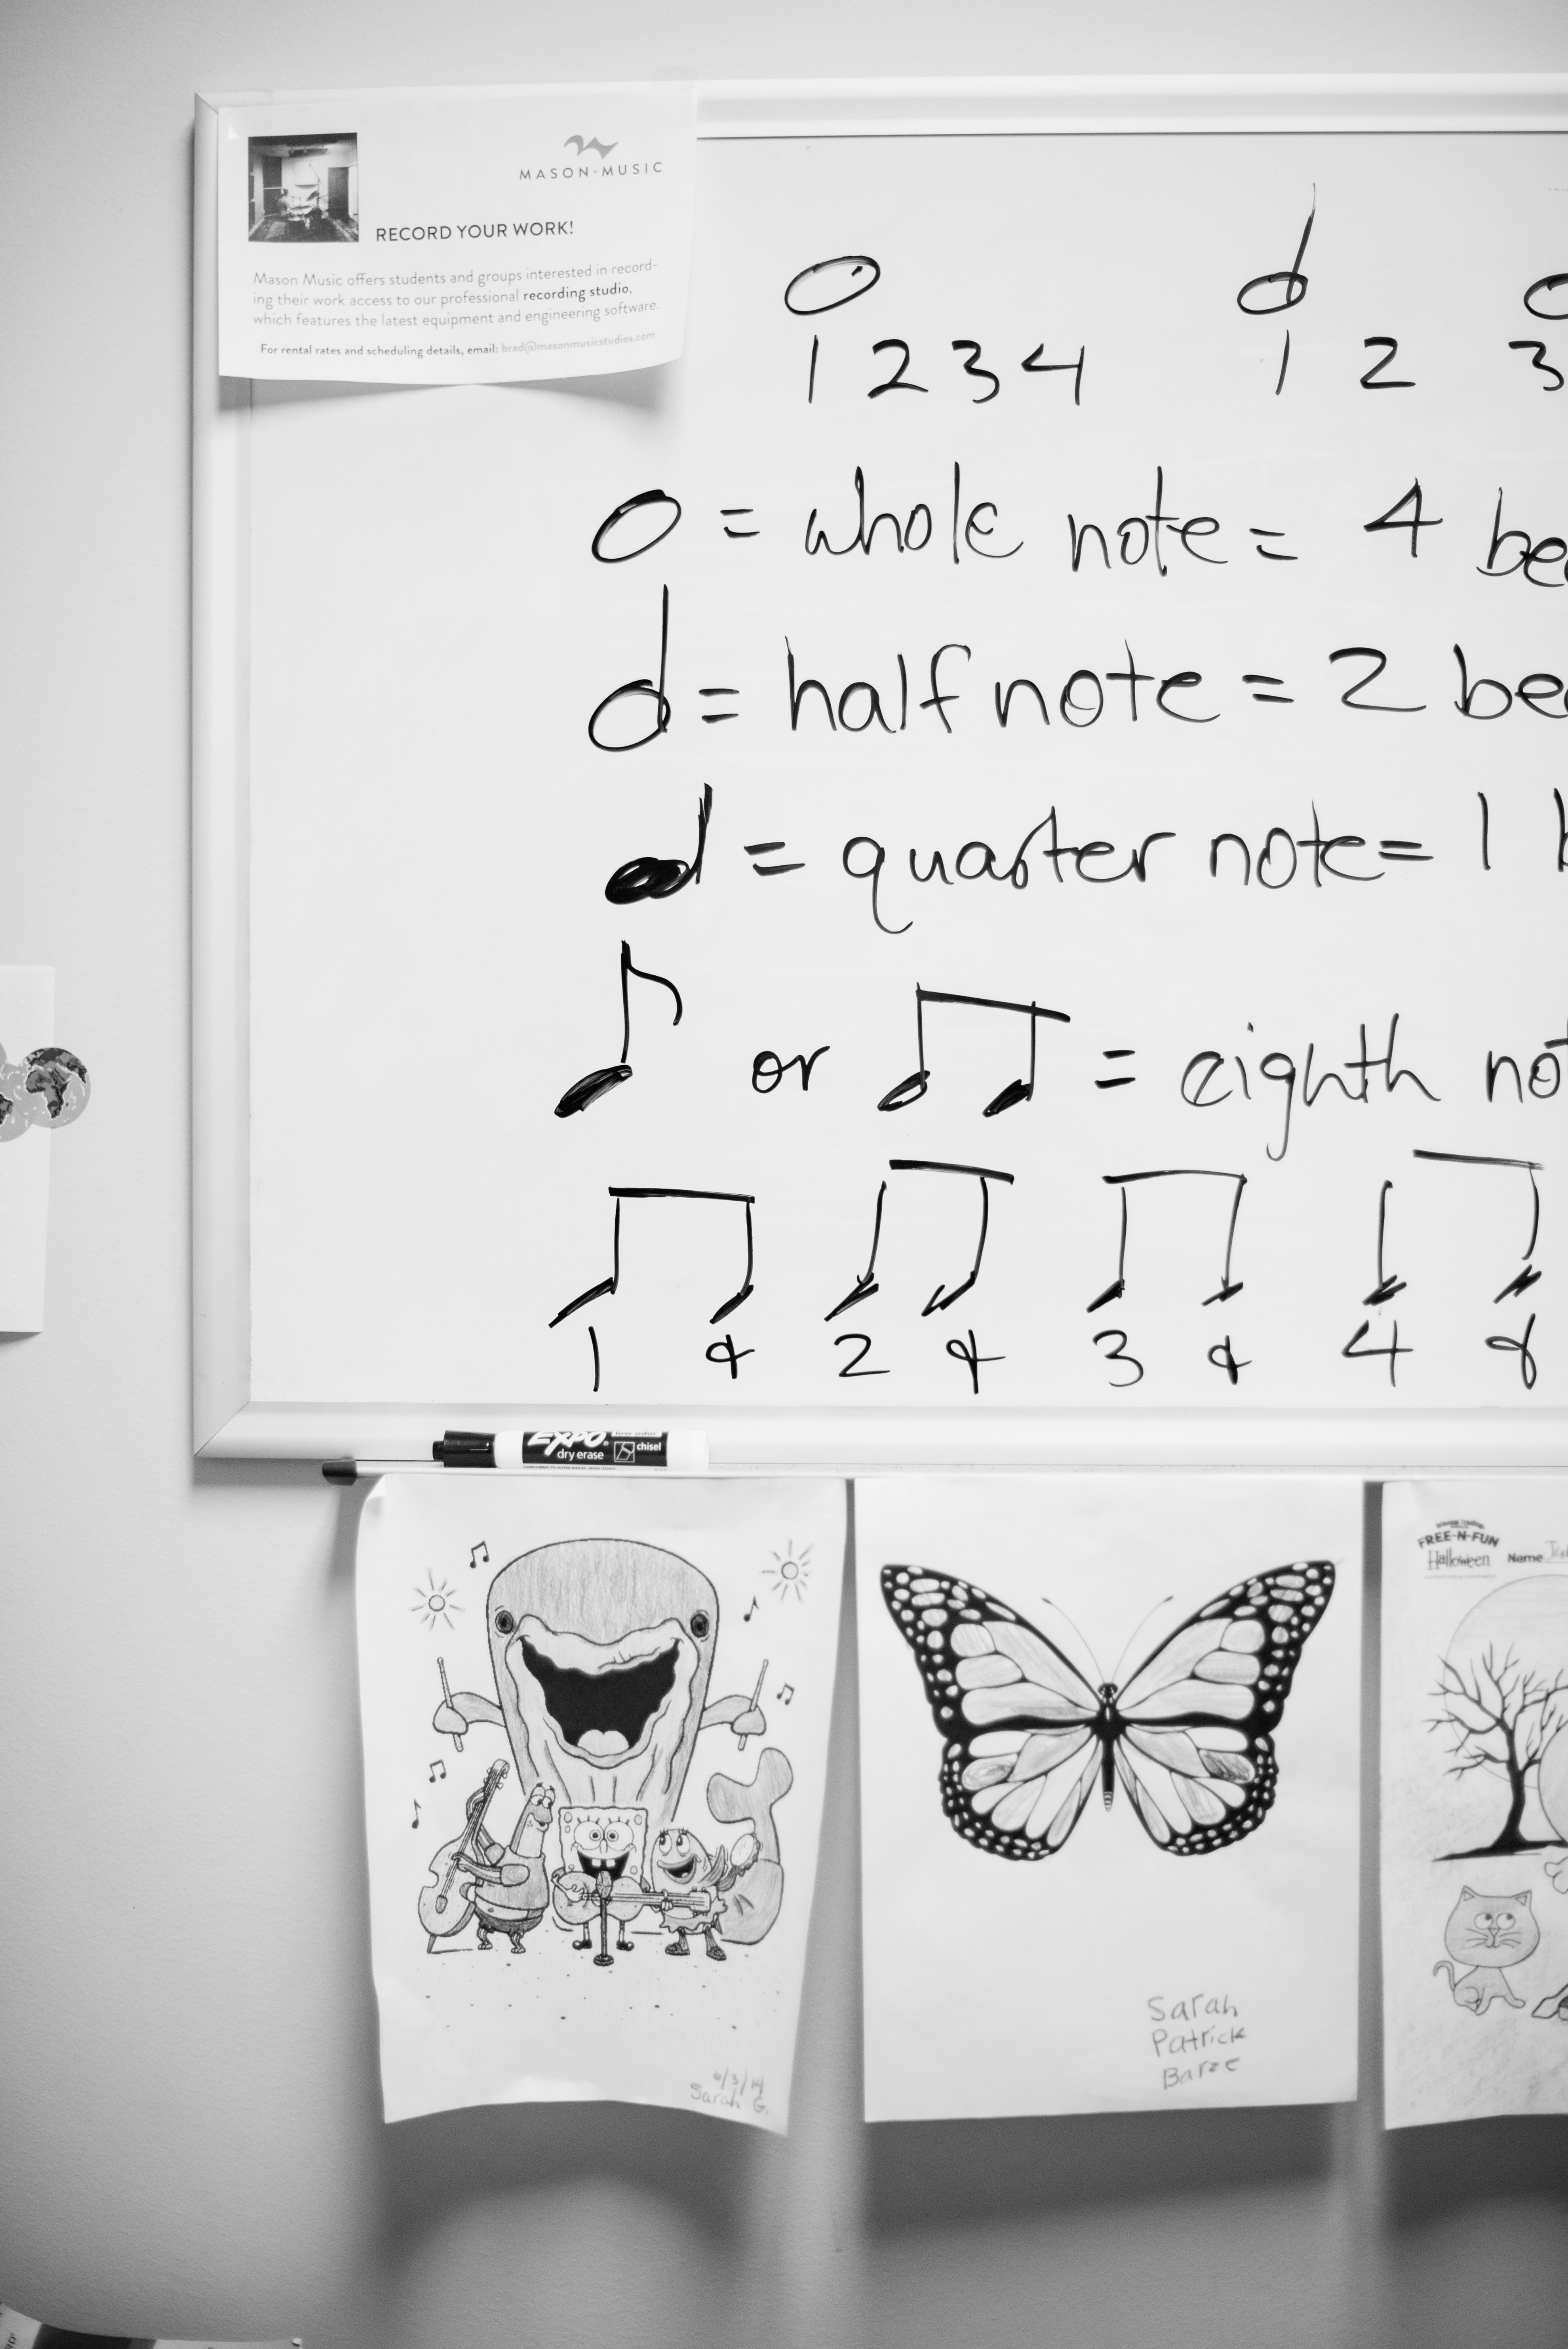 Music Theory is an important part of learning music at Mason Music in Birmingham, Alabama.